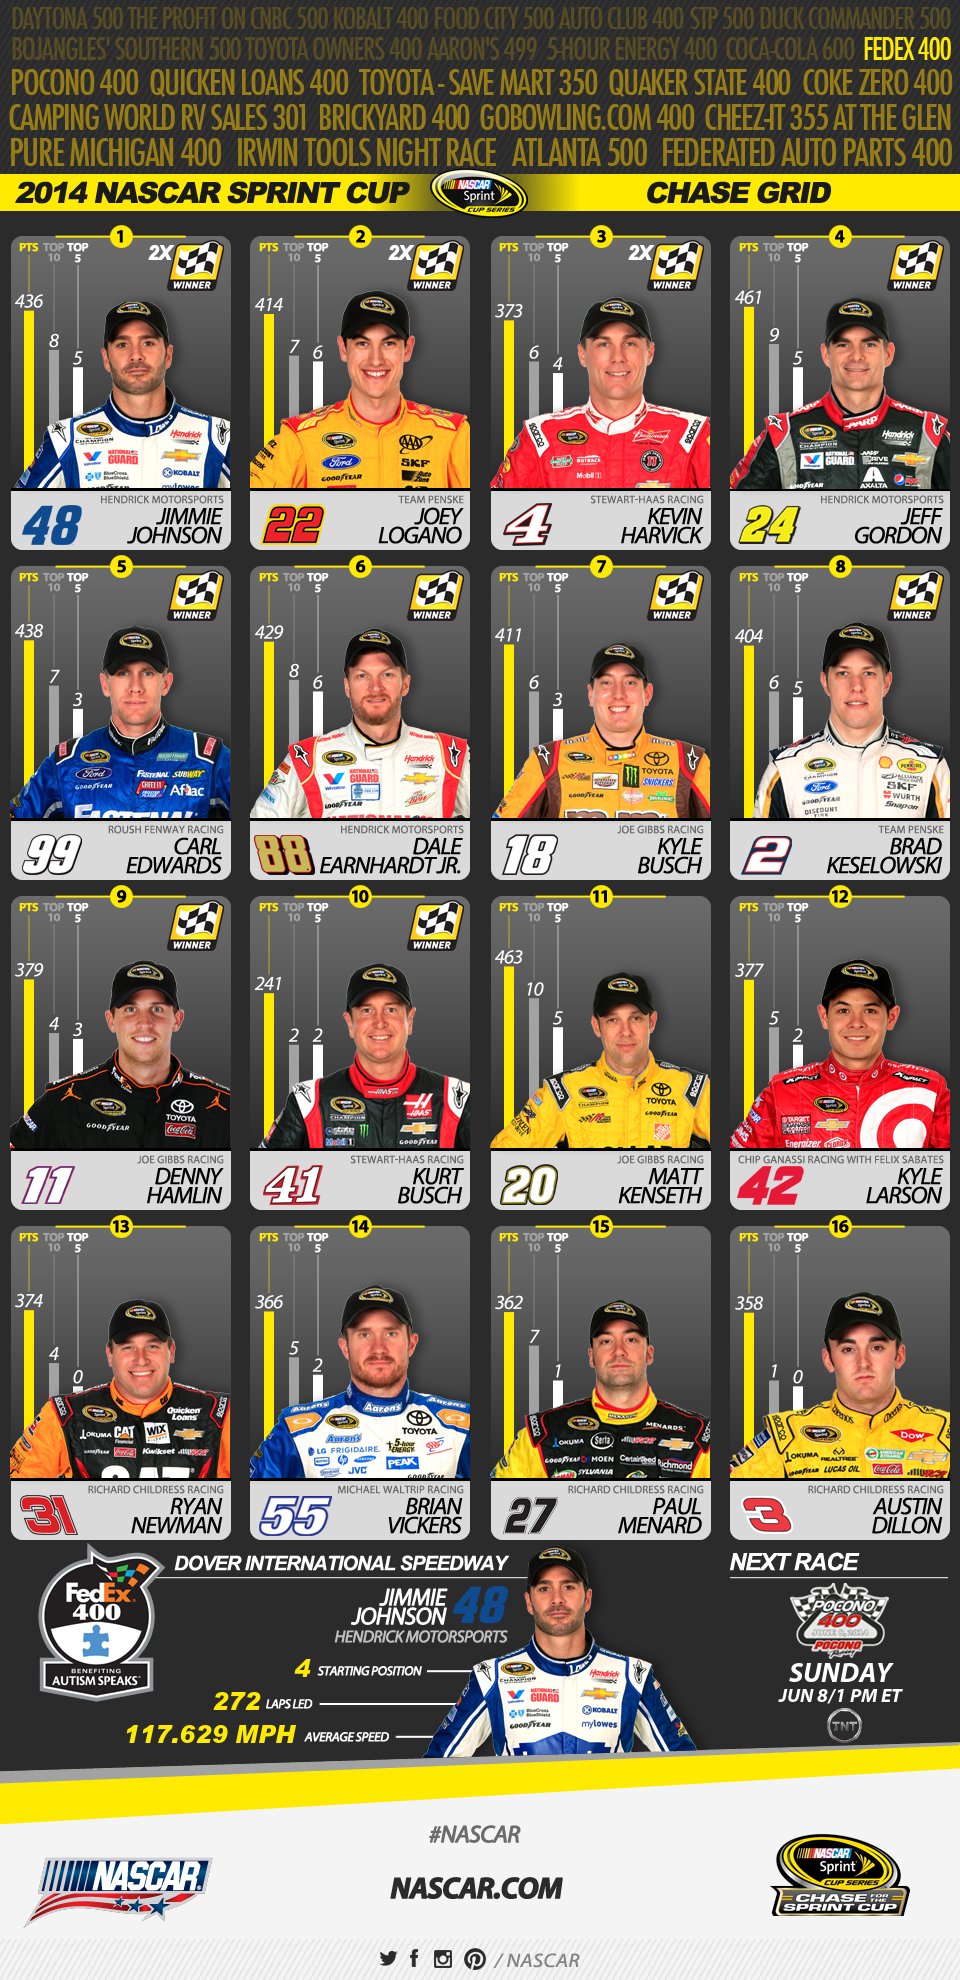 photograph about Nascar Chase Grid Printable named Johnson foremost Chase Grid with 2 wins Formal Web-site Of